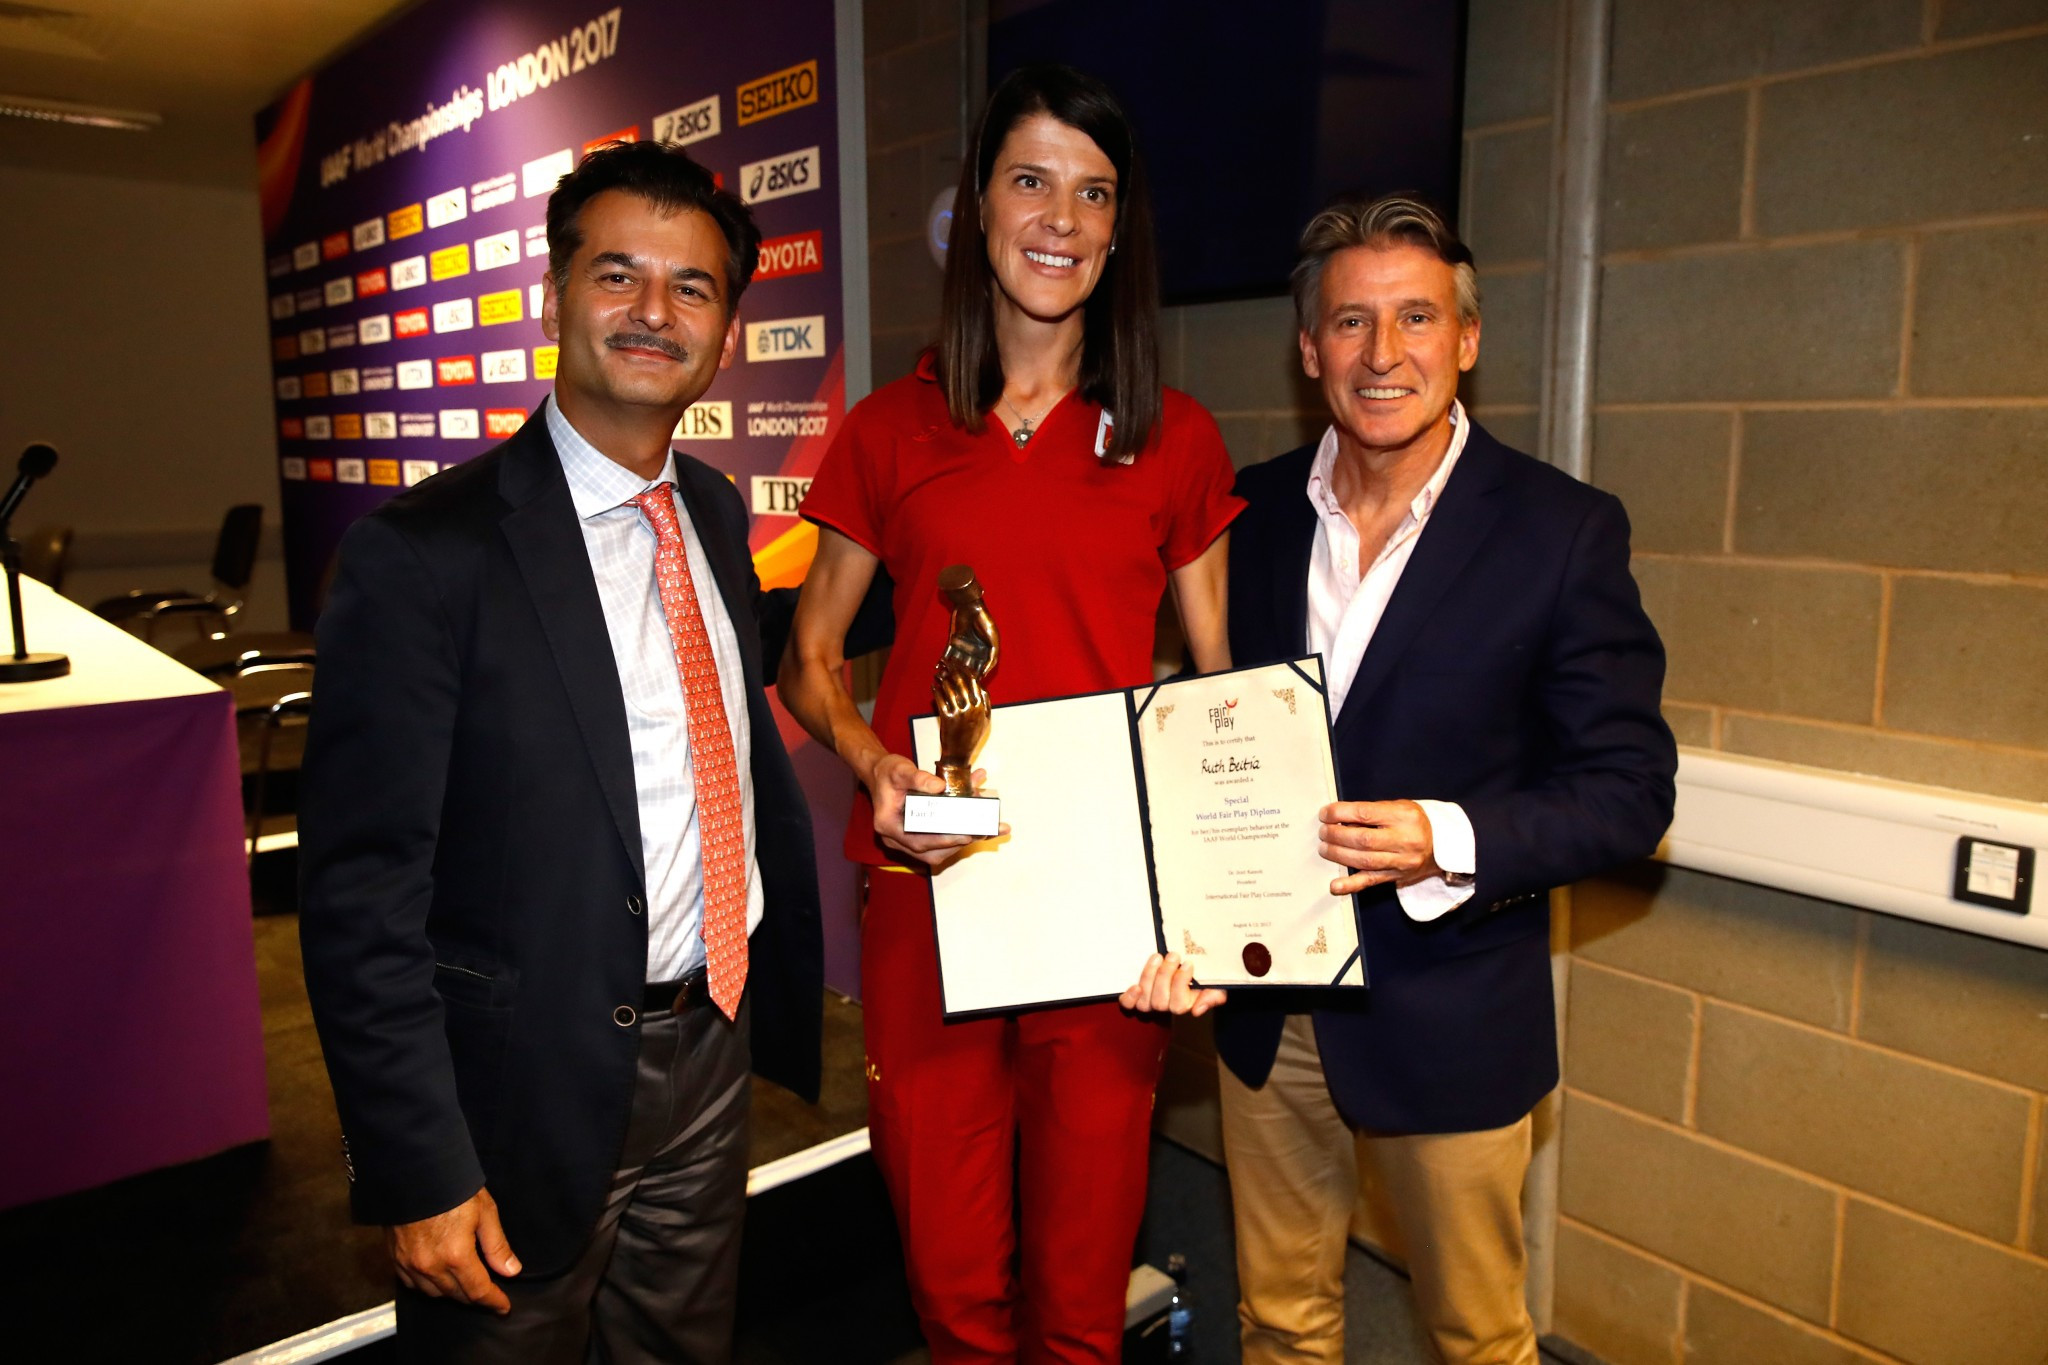 Olympic champion Beitia receives fair play award at IAAF World Championships